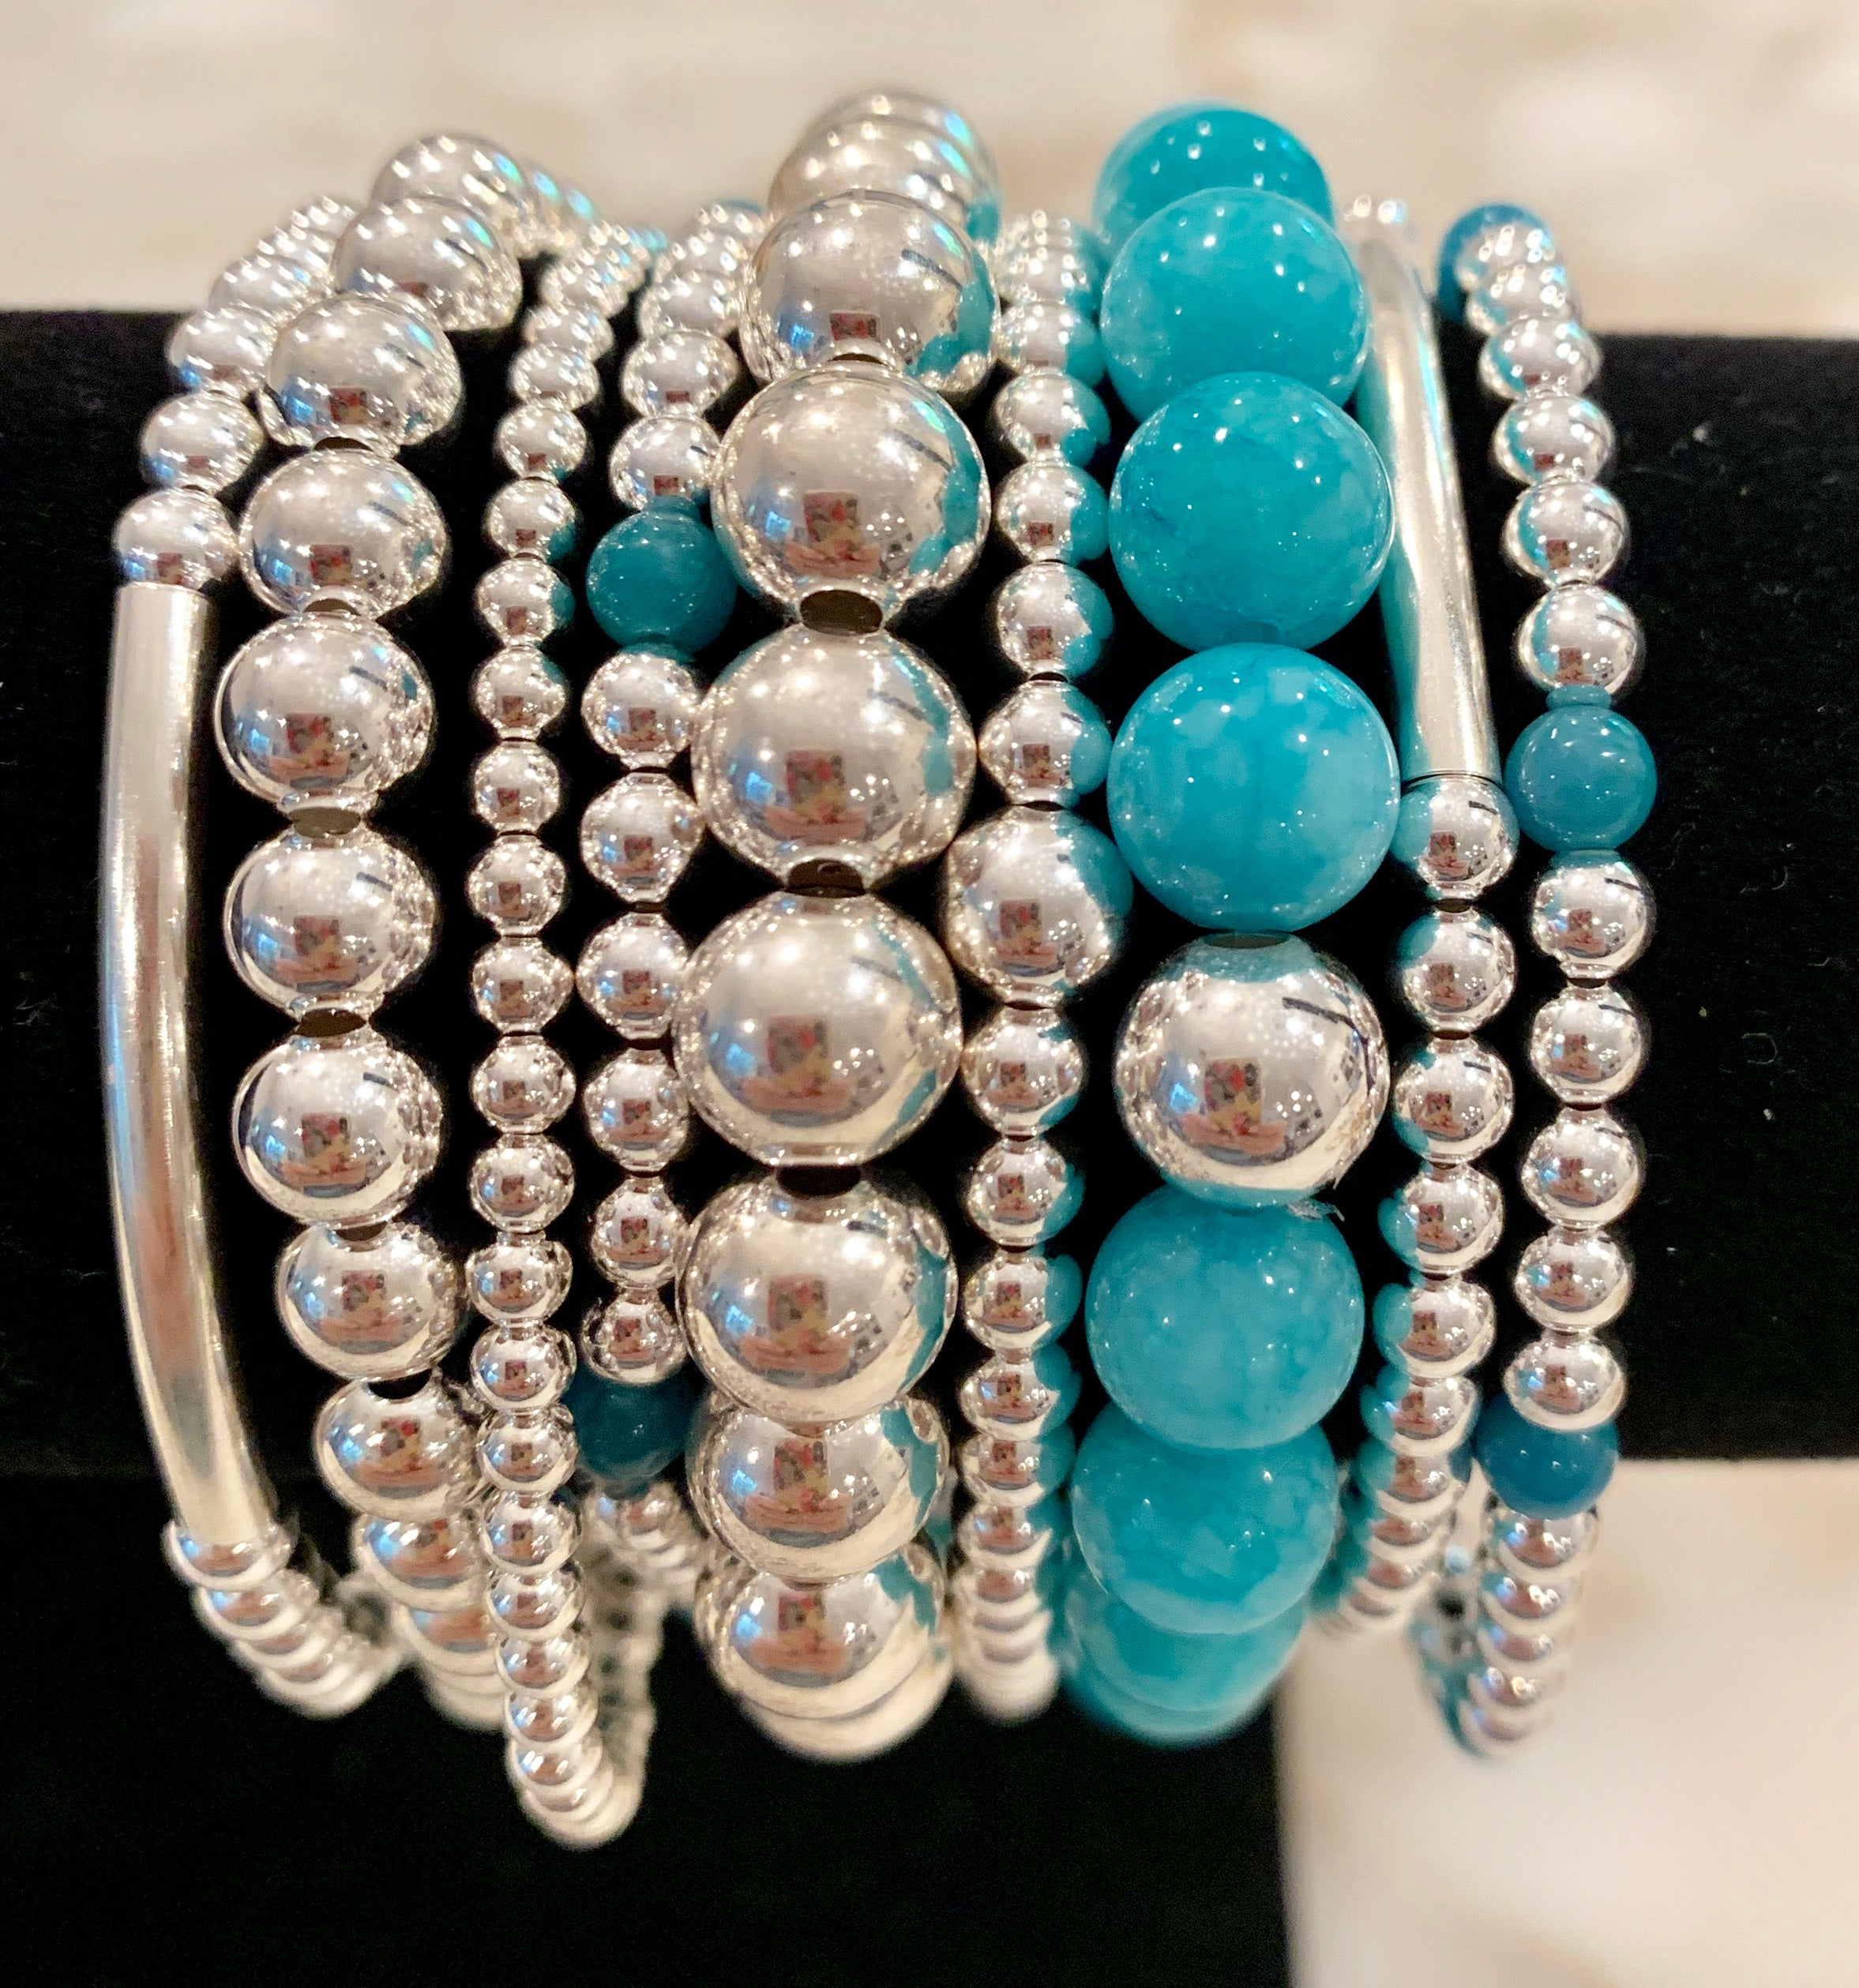 COPEY 8 Piece Sterling Silver Bead Bracelet Stack with Bright Blue Jade Stones